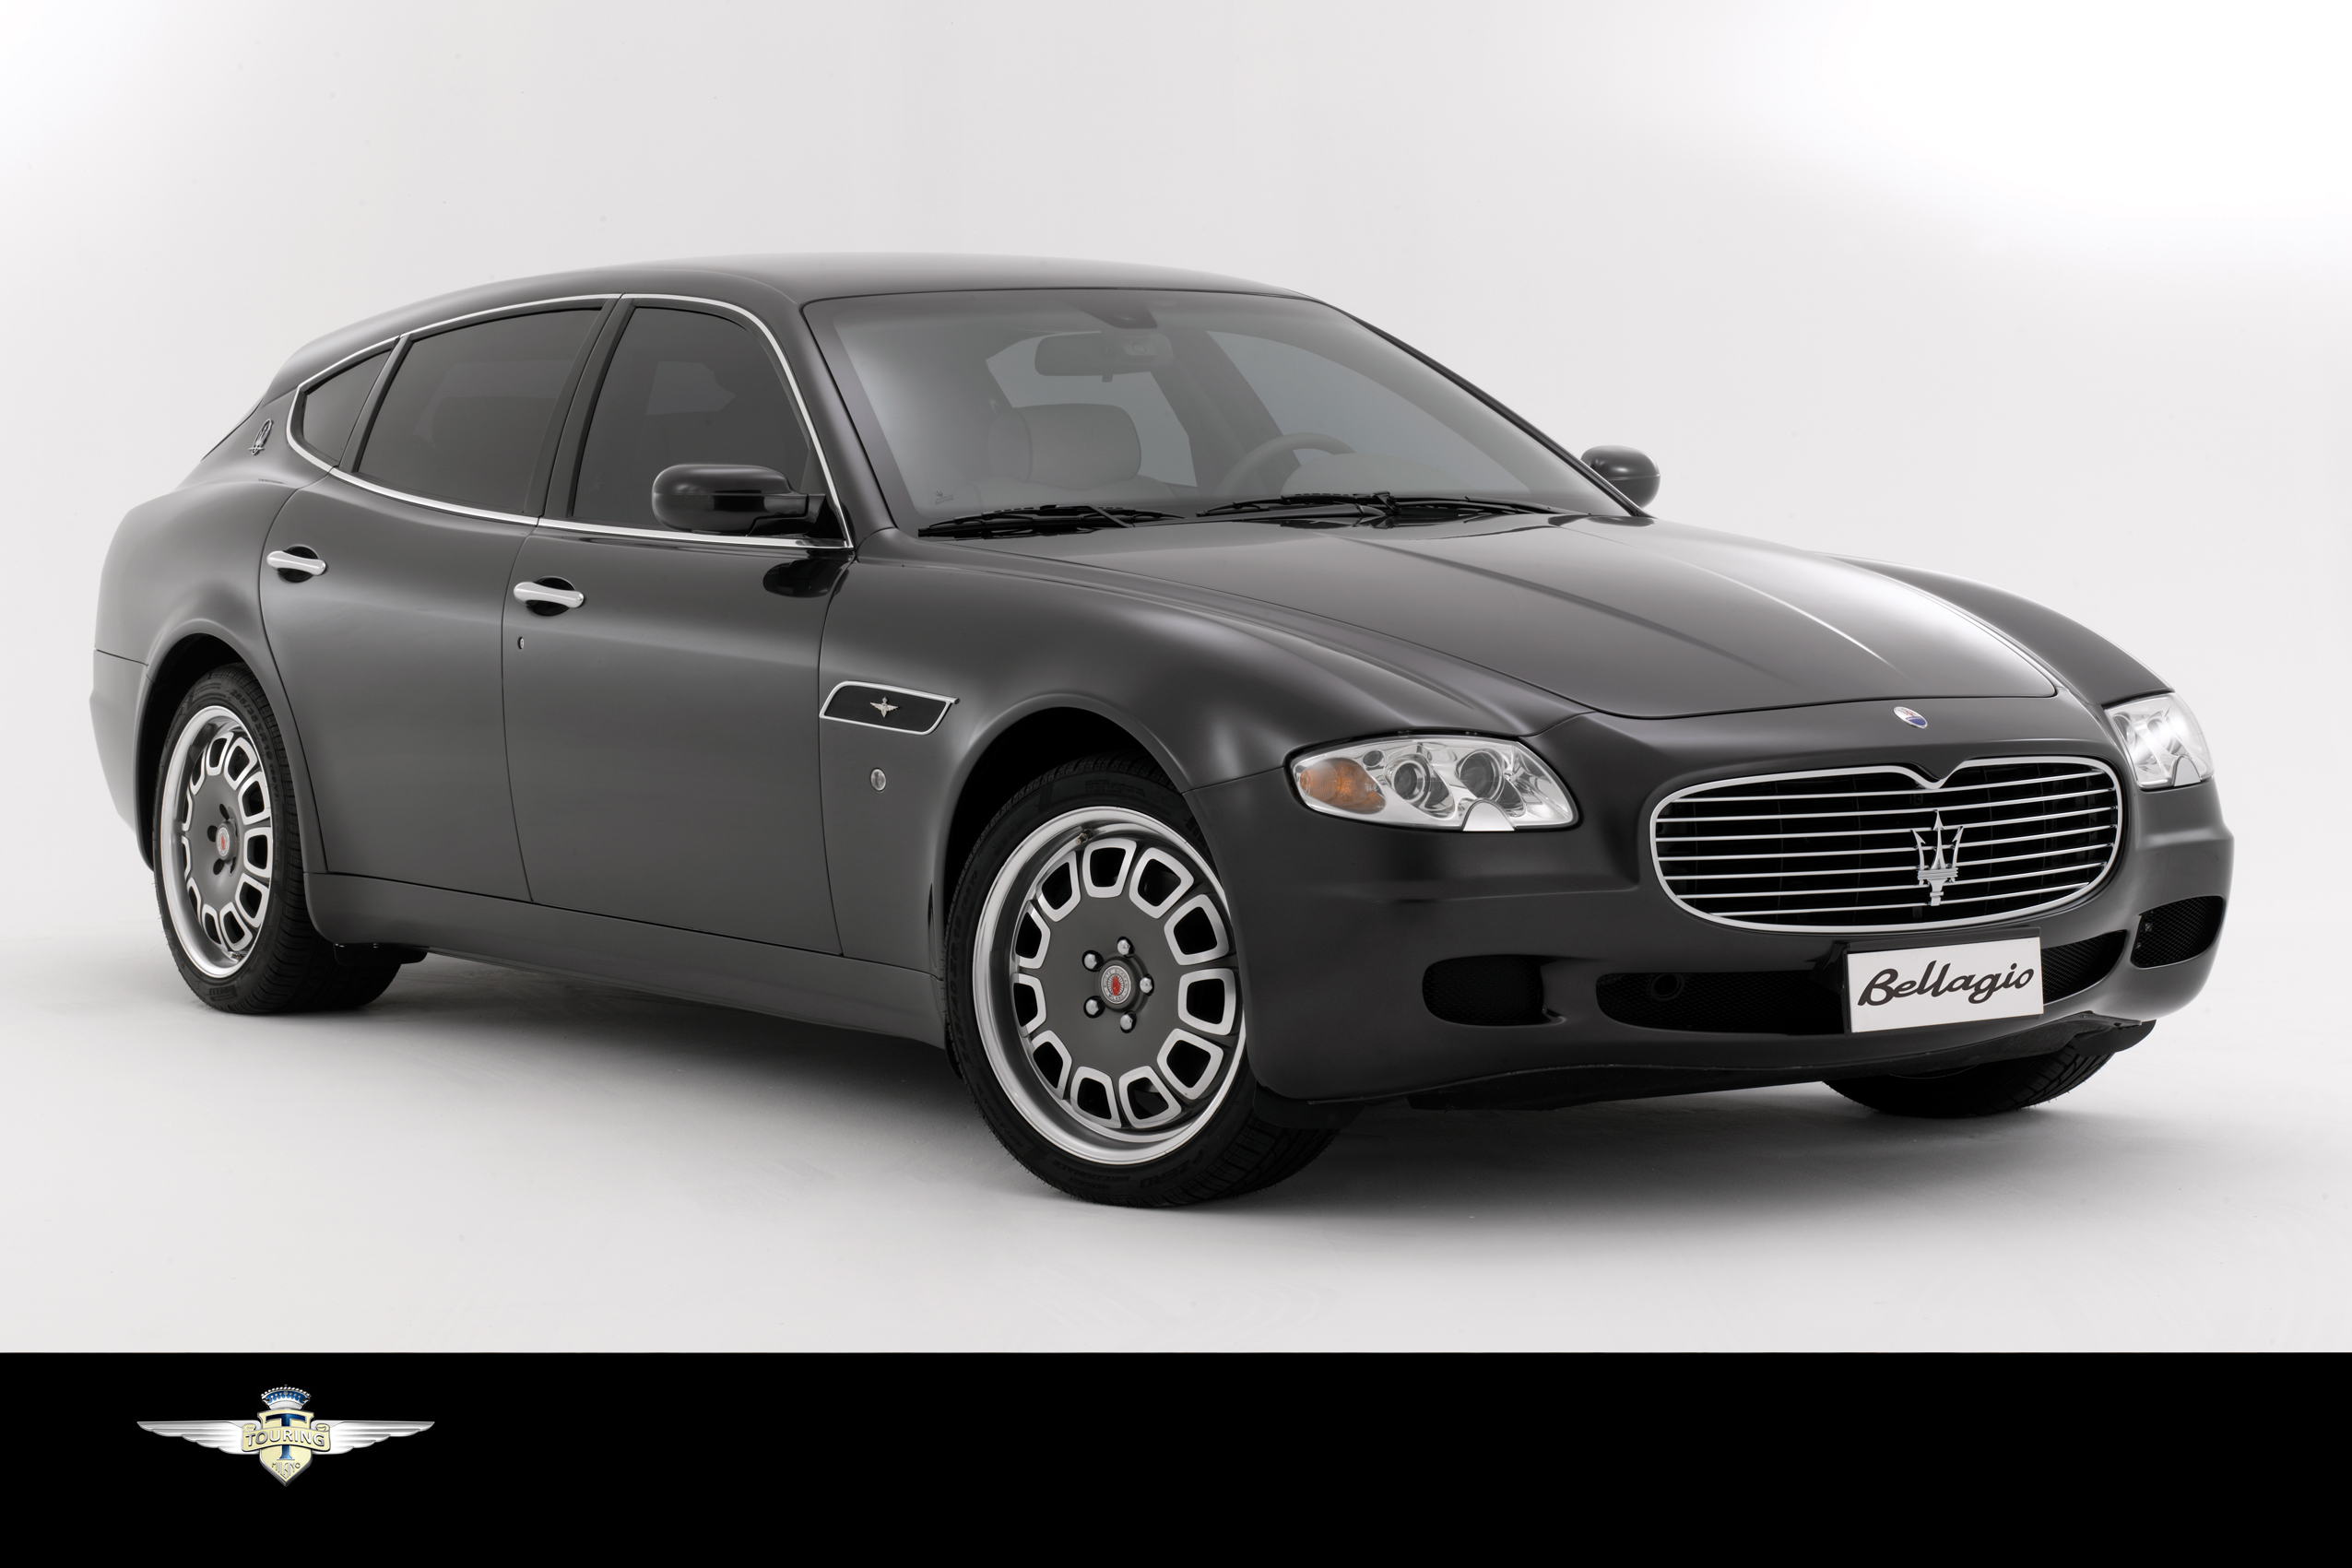 Alternative to BMW M5 Touring: Maserati Quattroporte Bellagio Fastback Touring-bellagio1.jpg